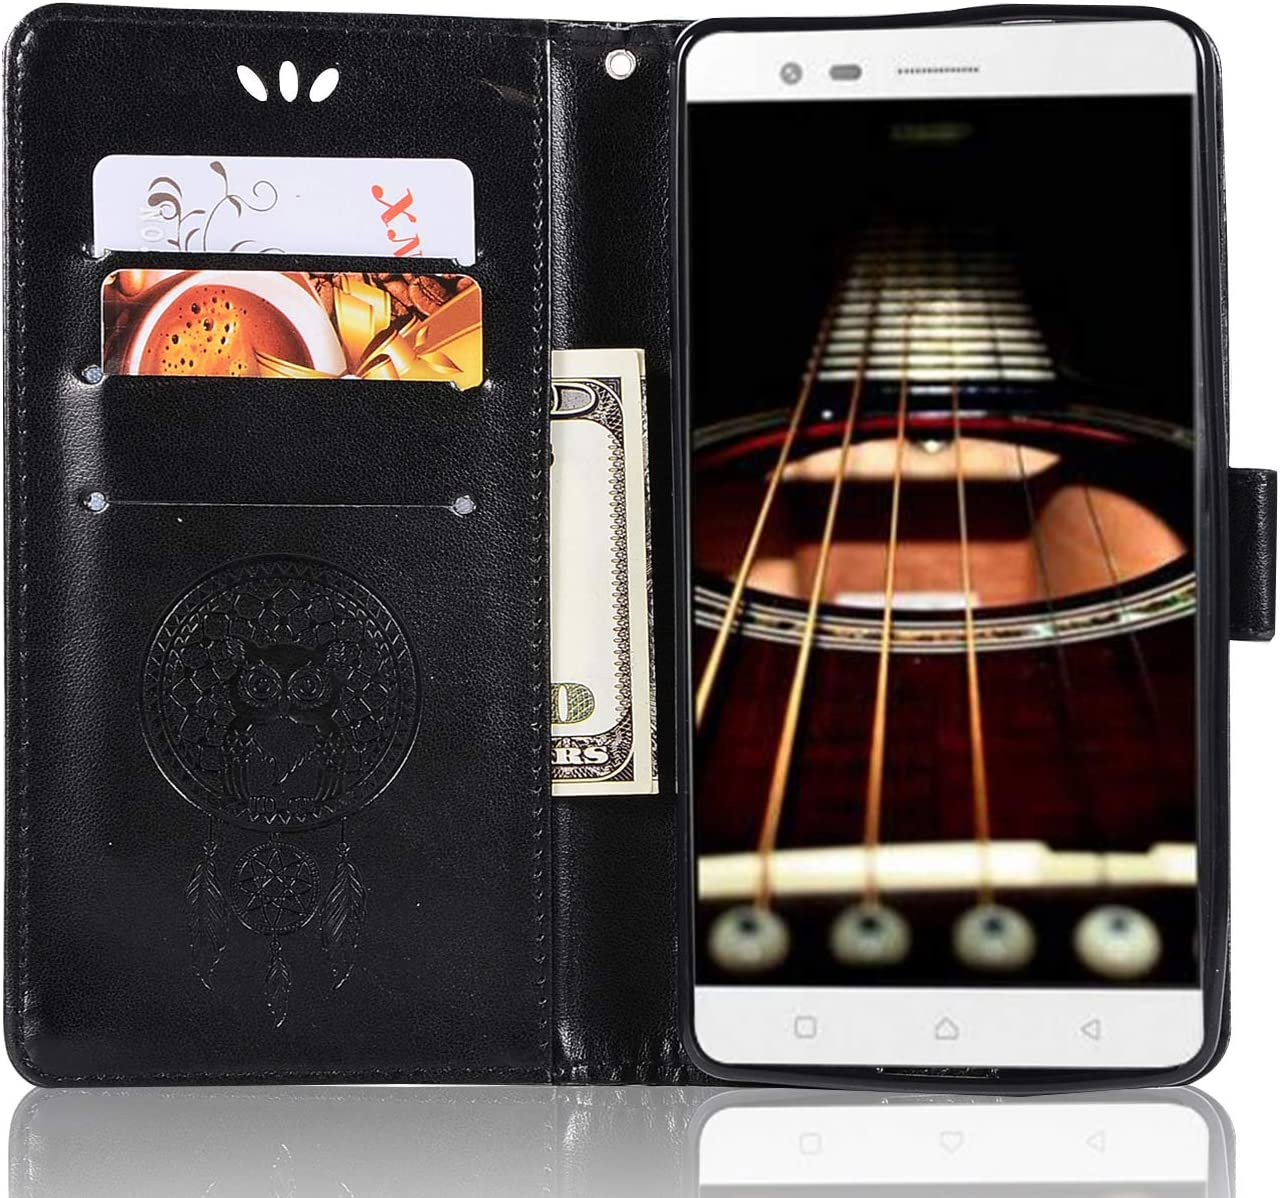 Lenovo K5 Note Leather Case, Lenovo Vibe K5 Note Pro Wallet Case, PU Leather Embossed Floral Flip Case with Credit Card Holder for 5.5'' Lenovo K5 Note, Lenovo Vibe K5 Note Pro